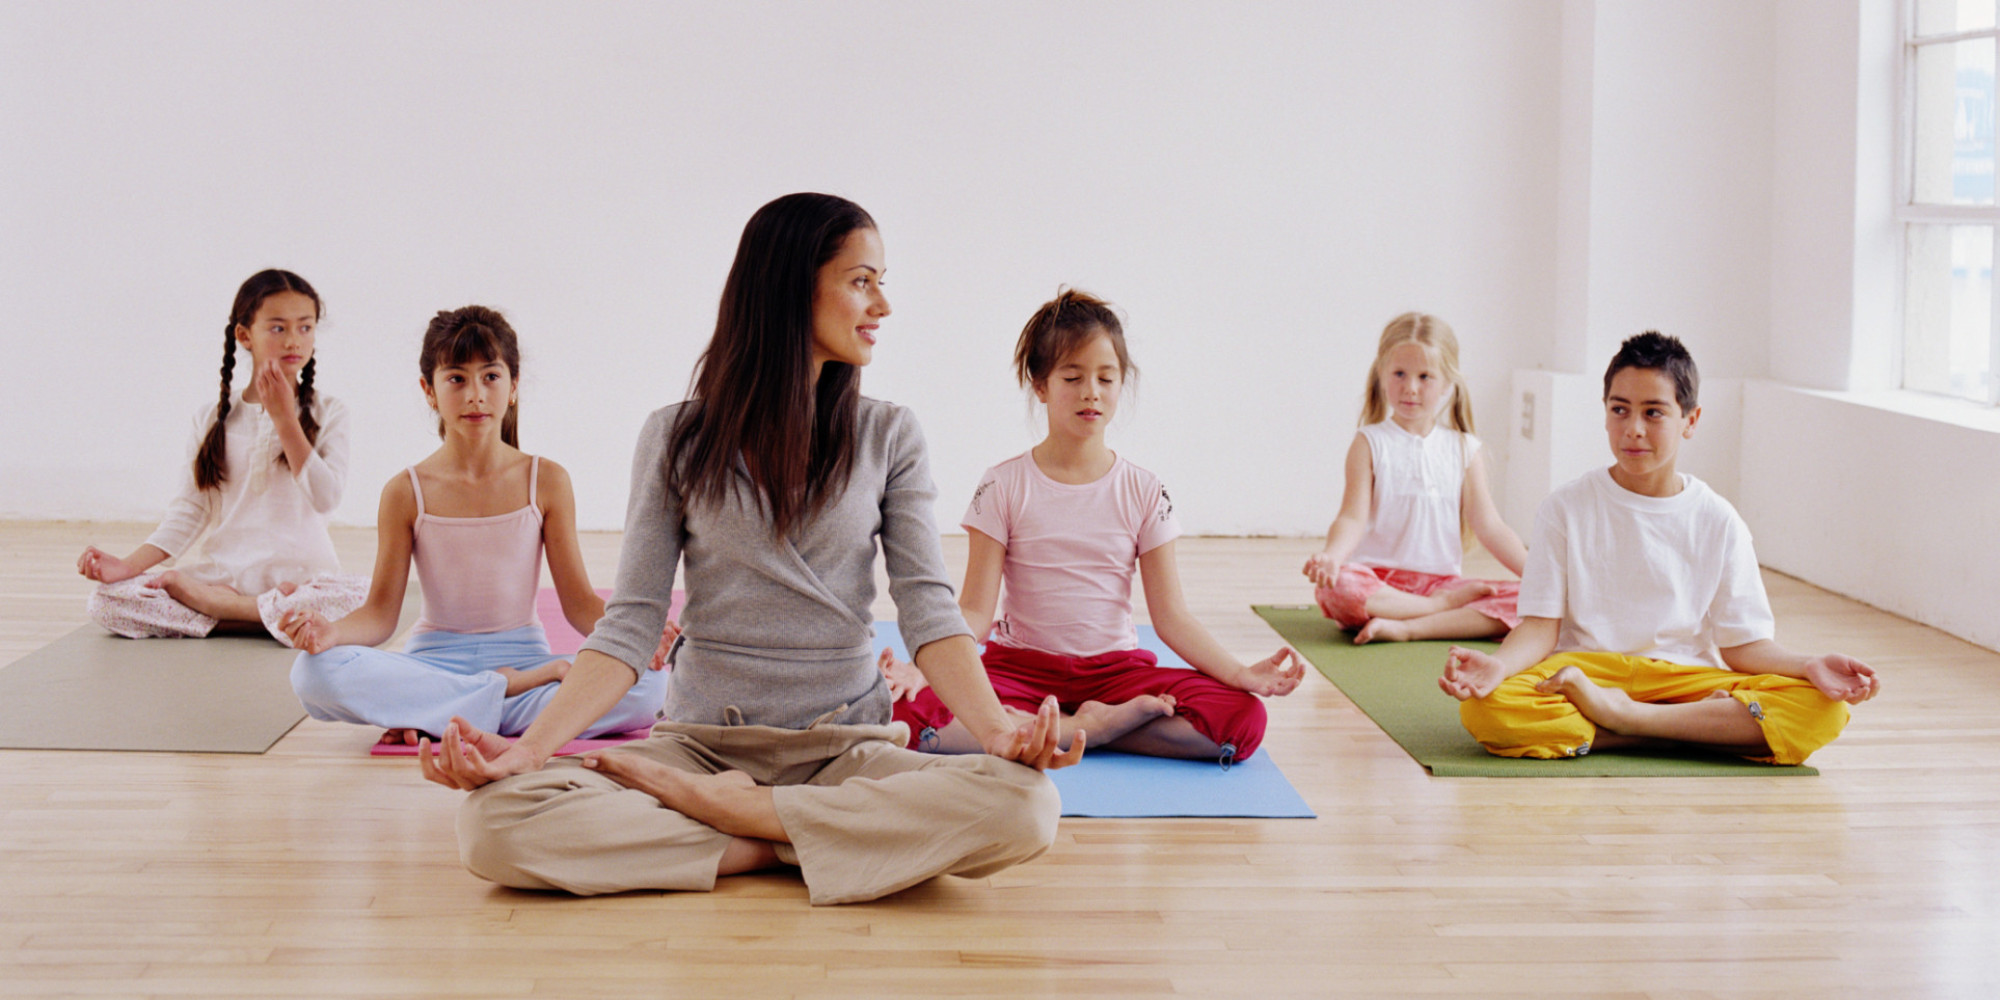 What is samkhya yoga? And how different is from hatha yoga? 5